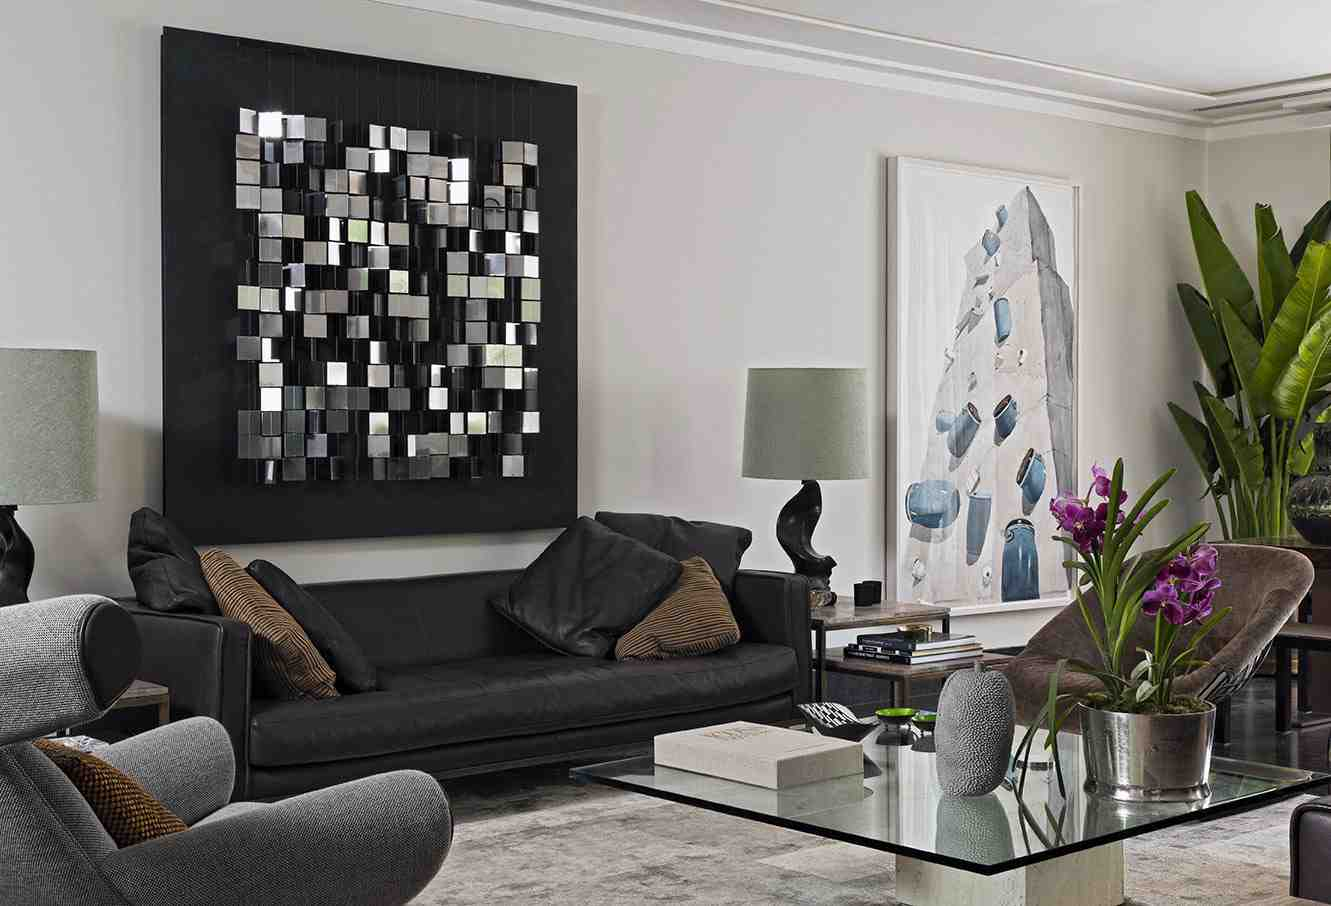 Wall Decorating Ideas For Living Rooms : Living room wall decor options ideasdecor ideas